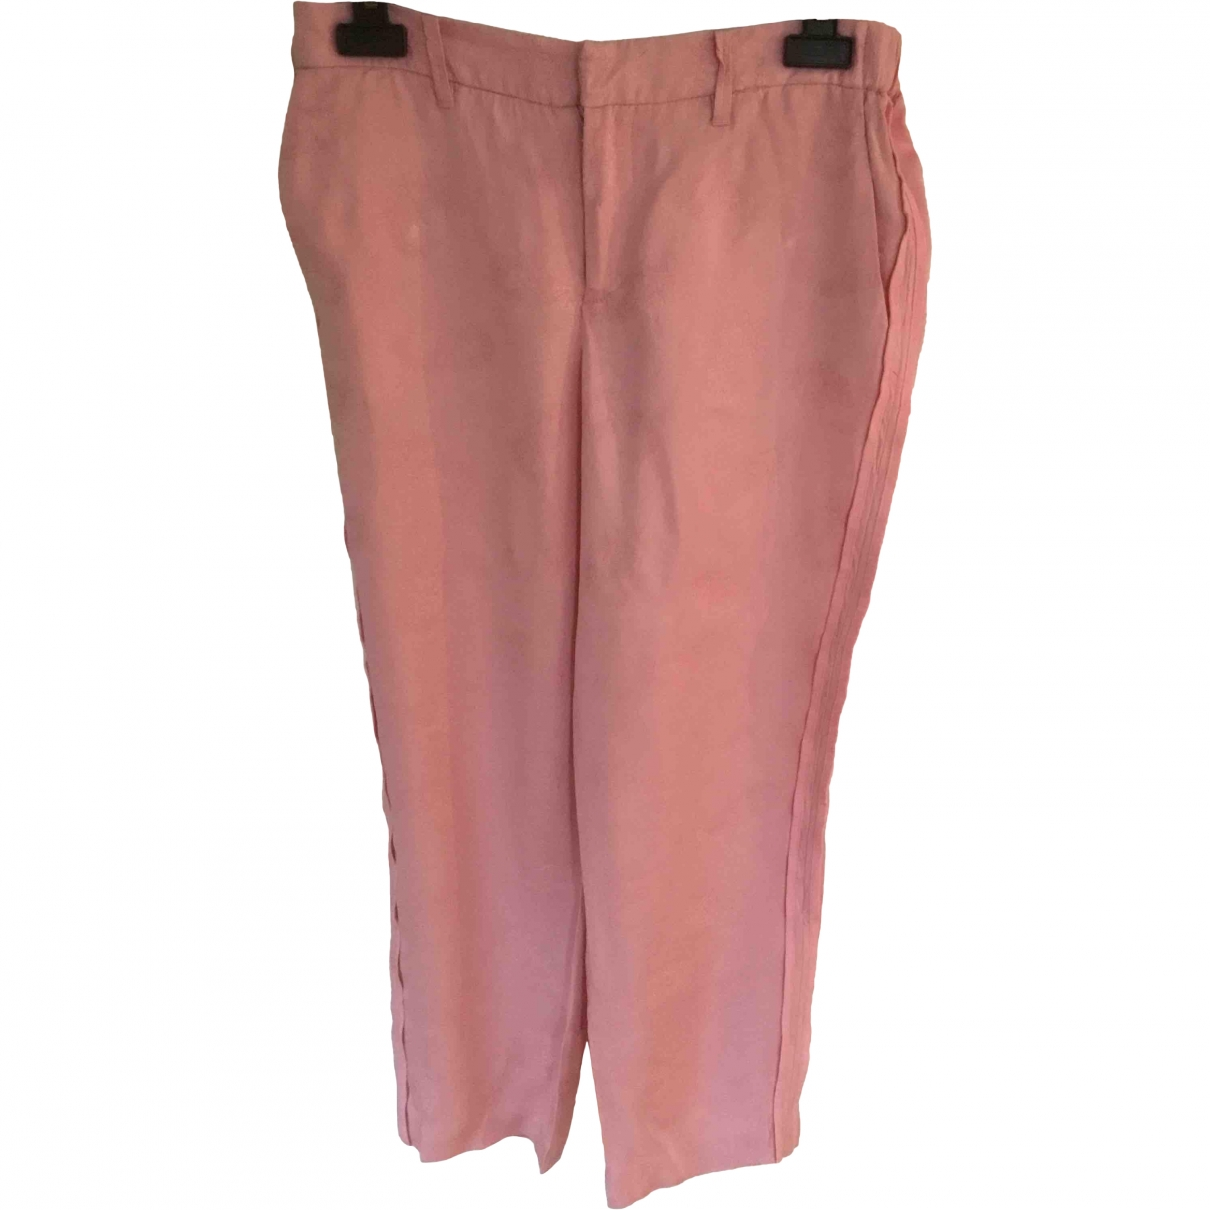 Zadig & Voltaire Spring Summer 2019 Pink Trousers for Women 38 FR